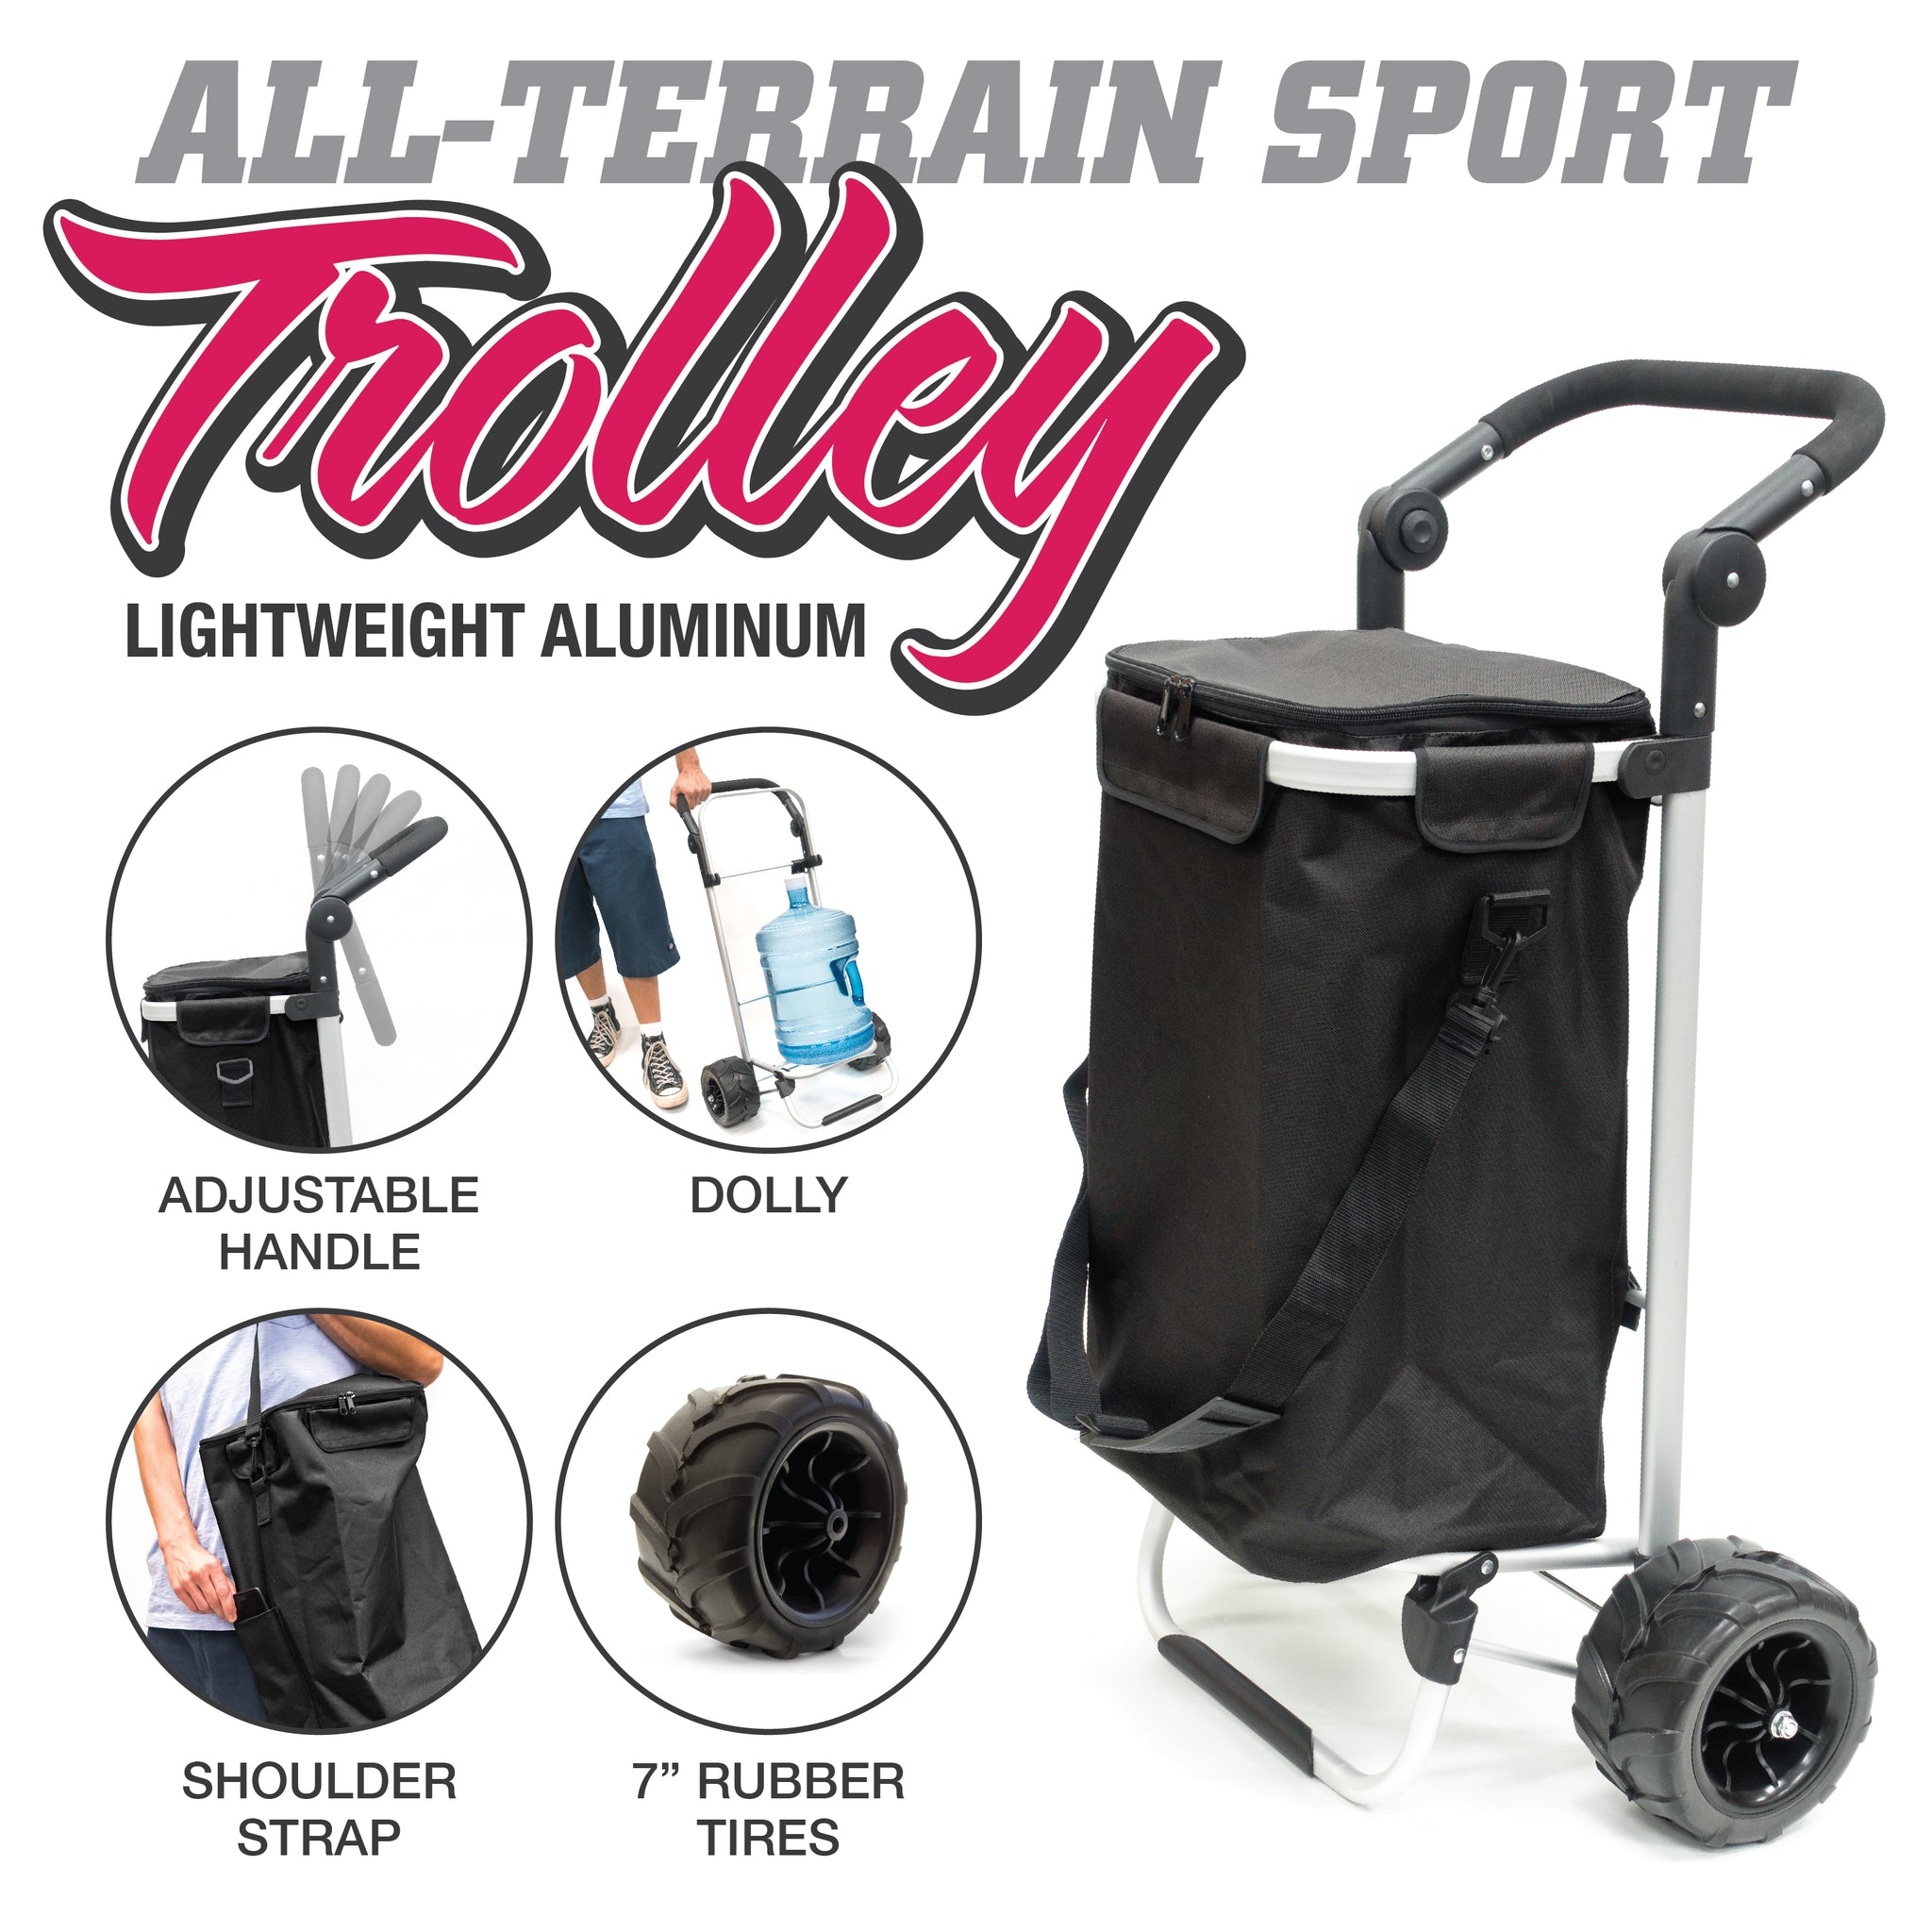 All-Terrain Folding Aluminum Trolley Features 890300